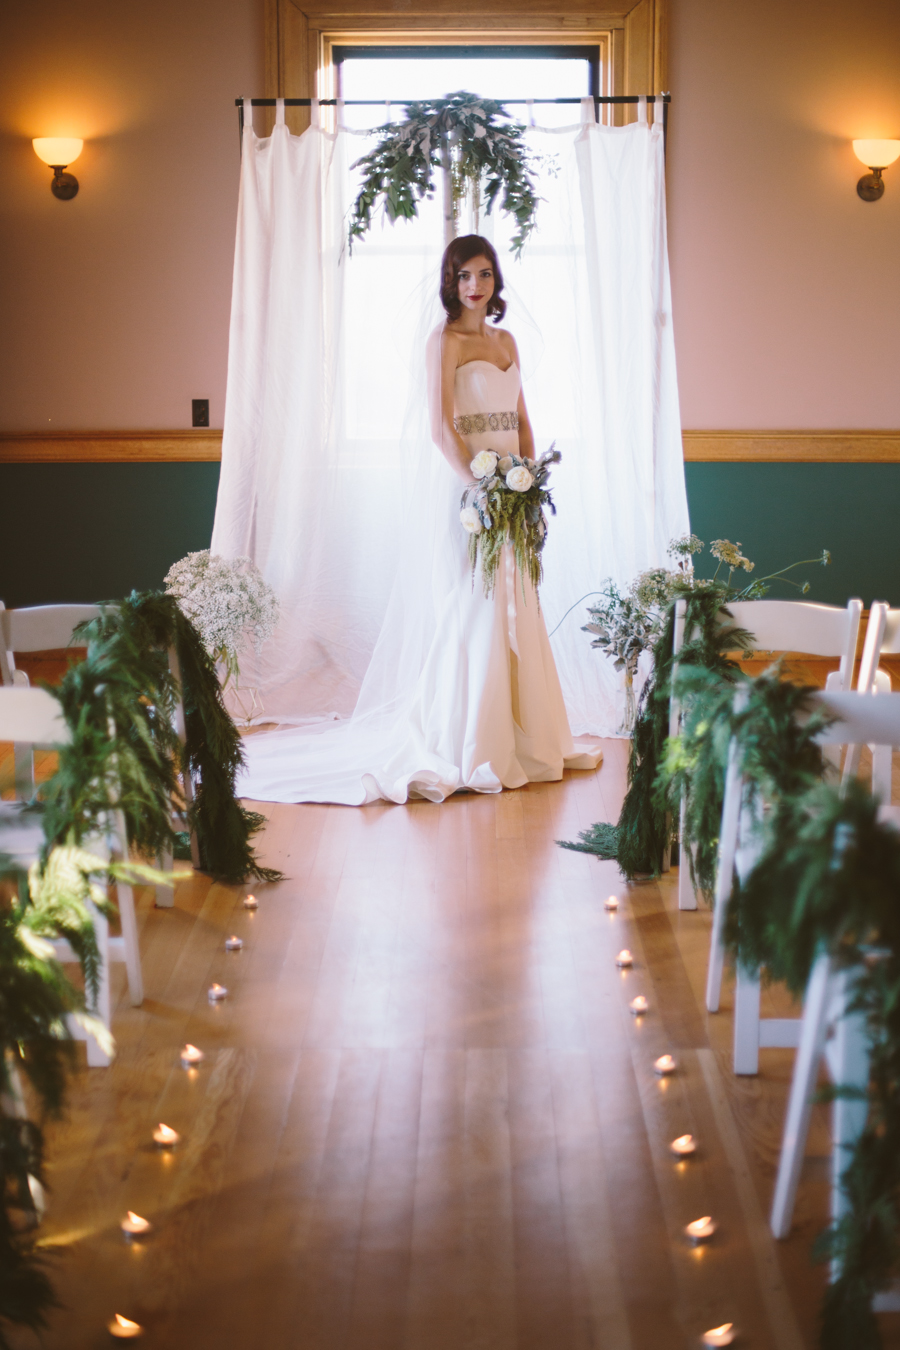 Tacoma Wedding Photographer, Liz Morrow Studios